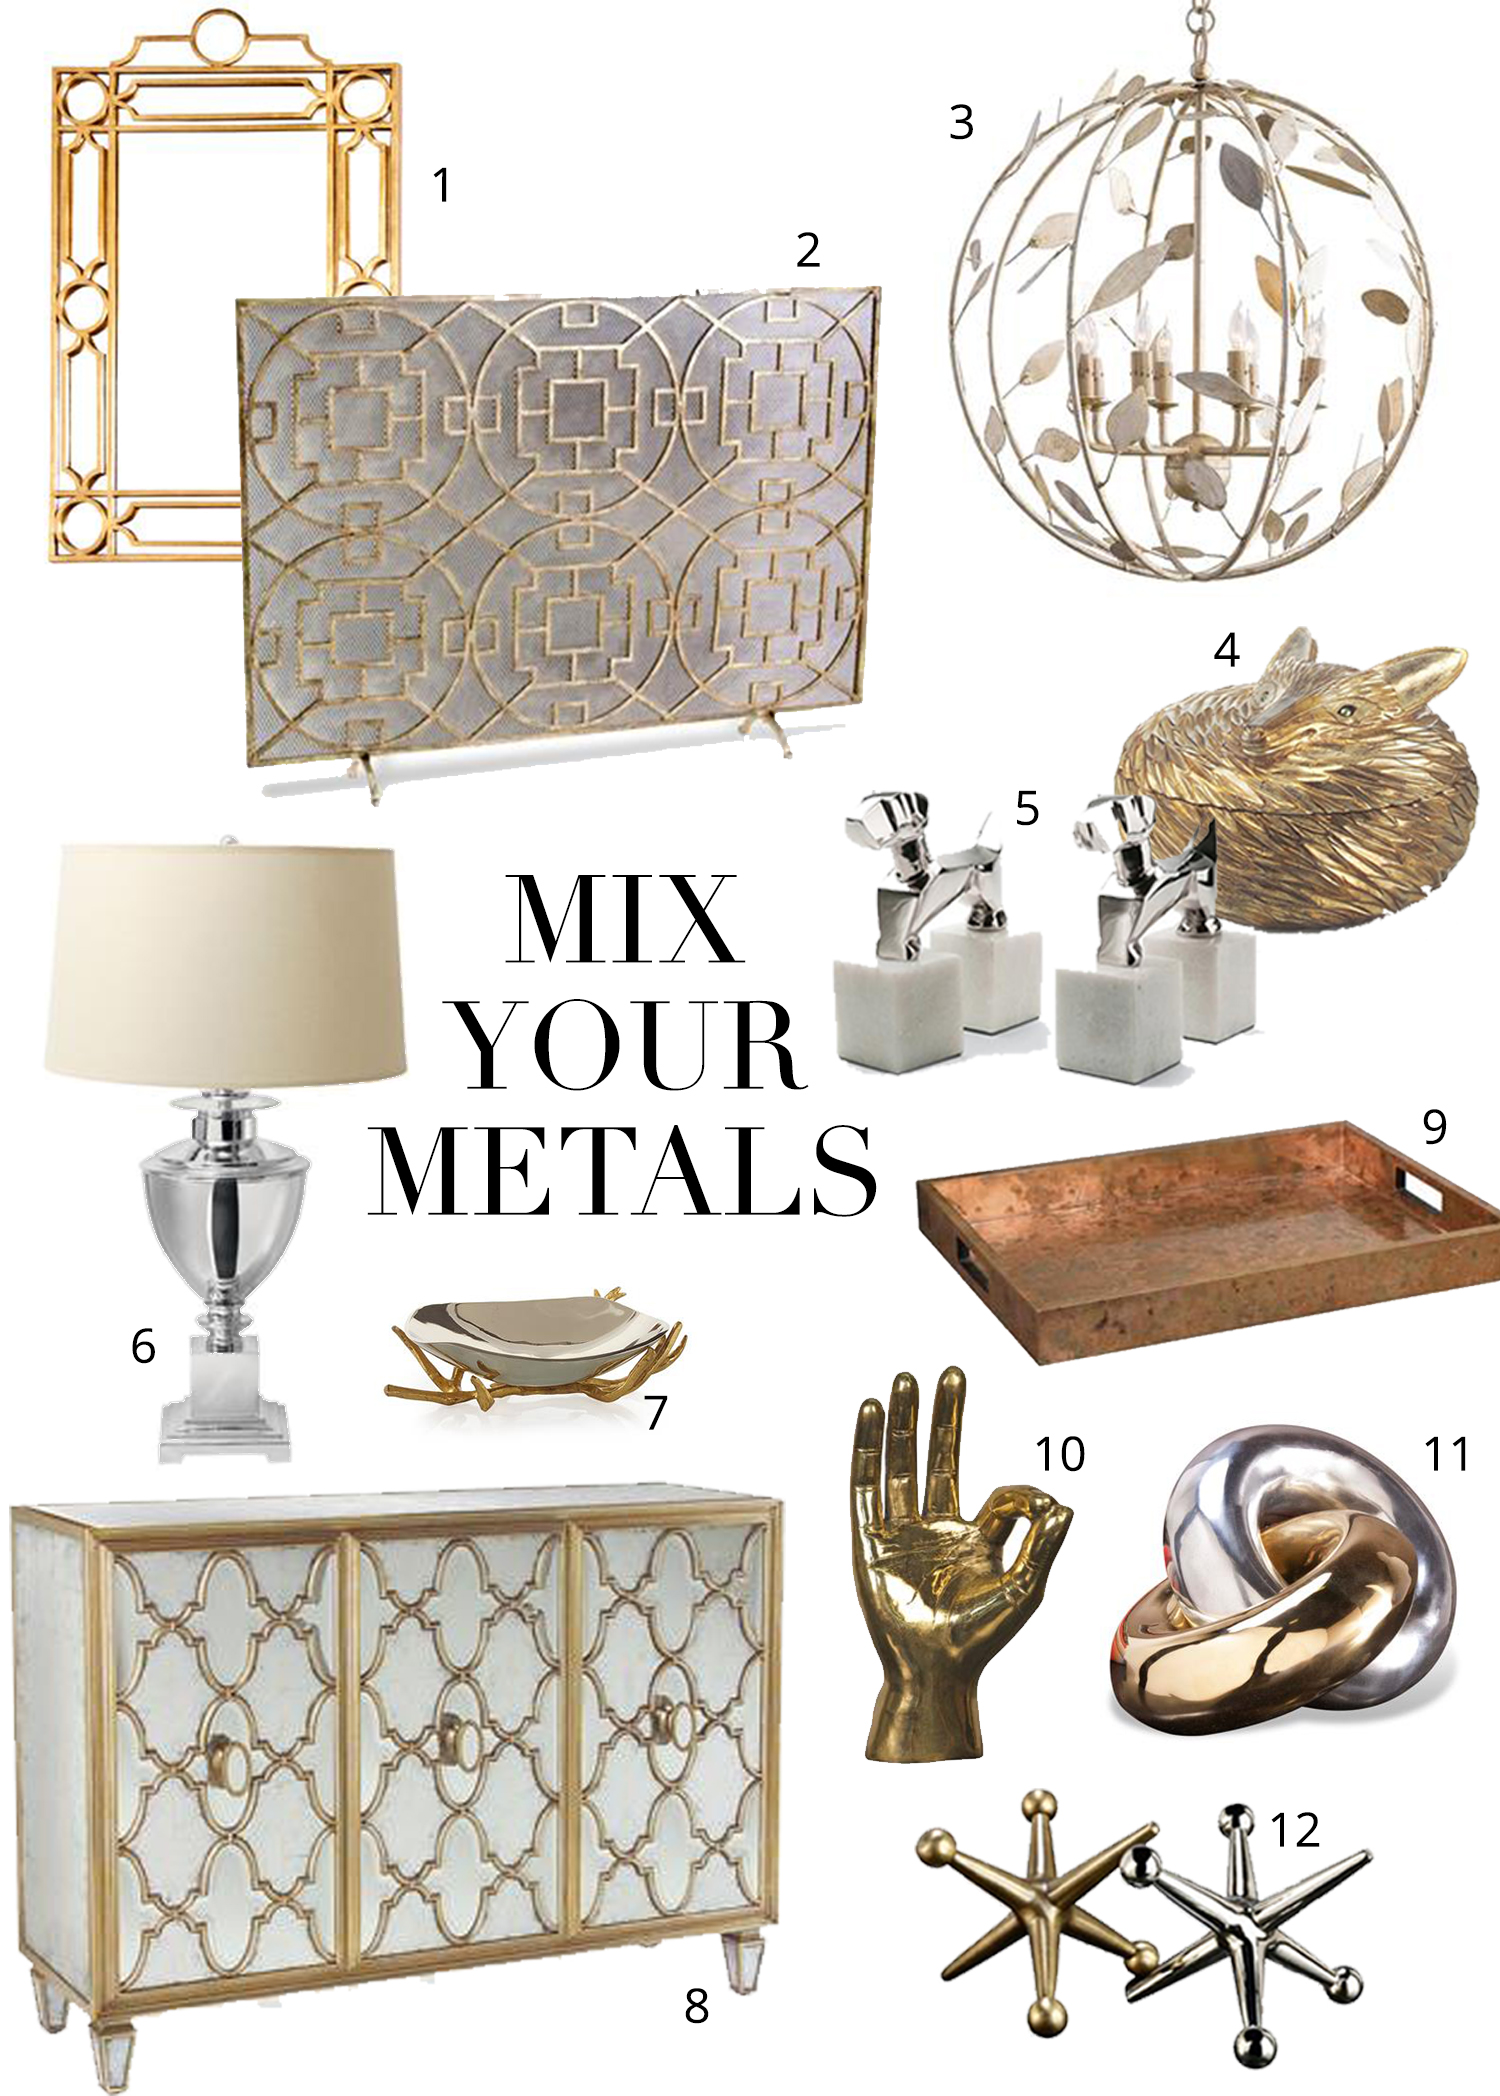 Mixing Metals The Do S And Don Ts Kathy Kuo Blog Kathy